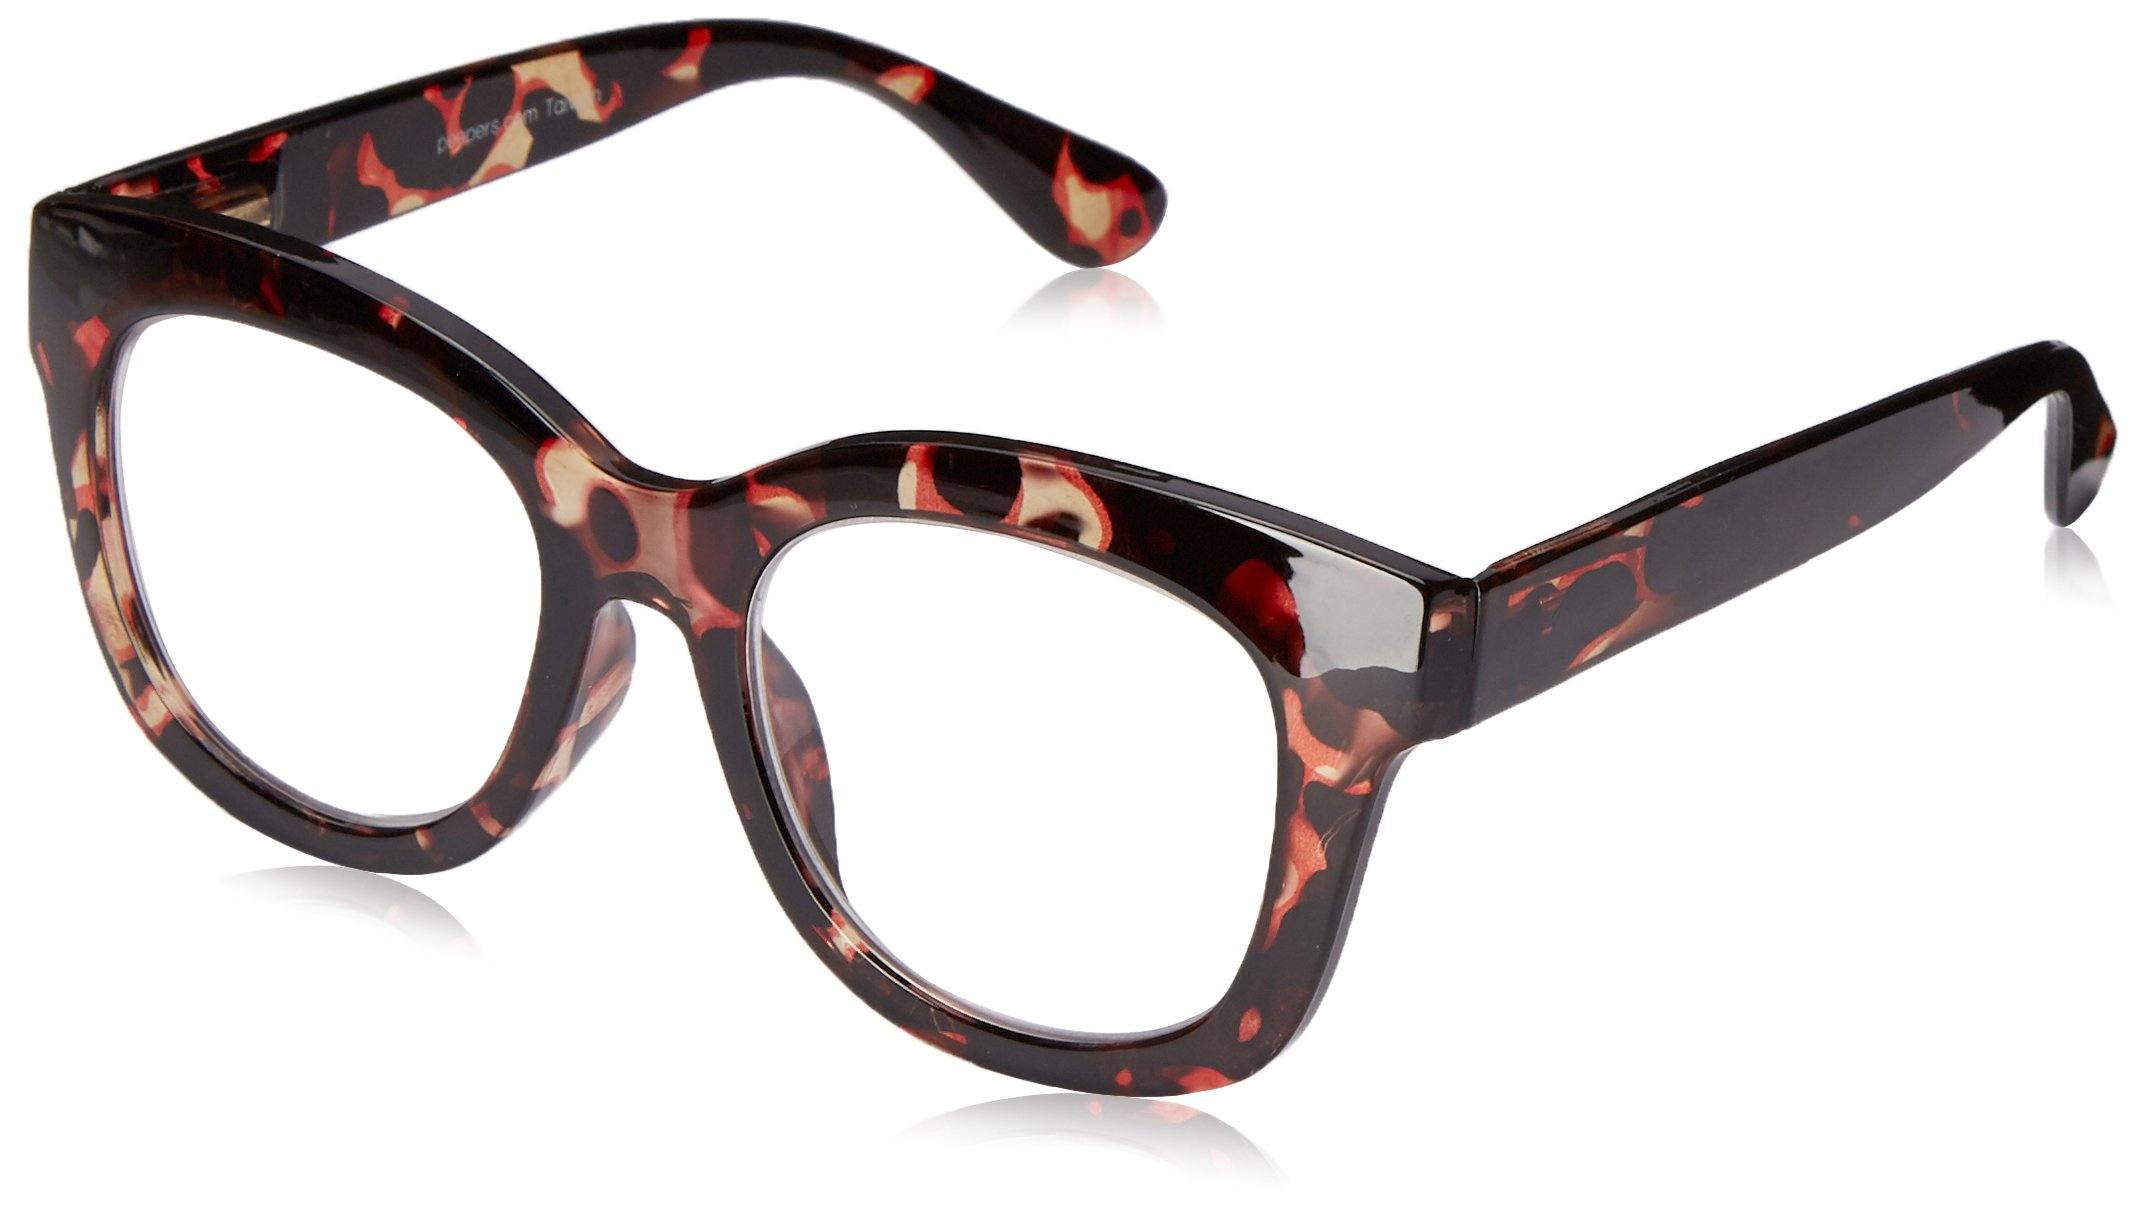 Peepers Women's Center Stage 2300150 Oval Reading Glasses, Tortoise, 1.5 by Peepers